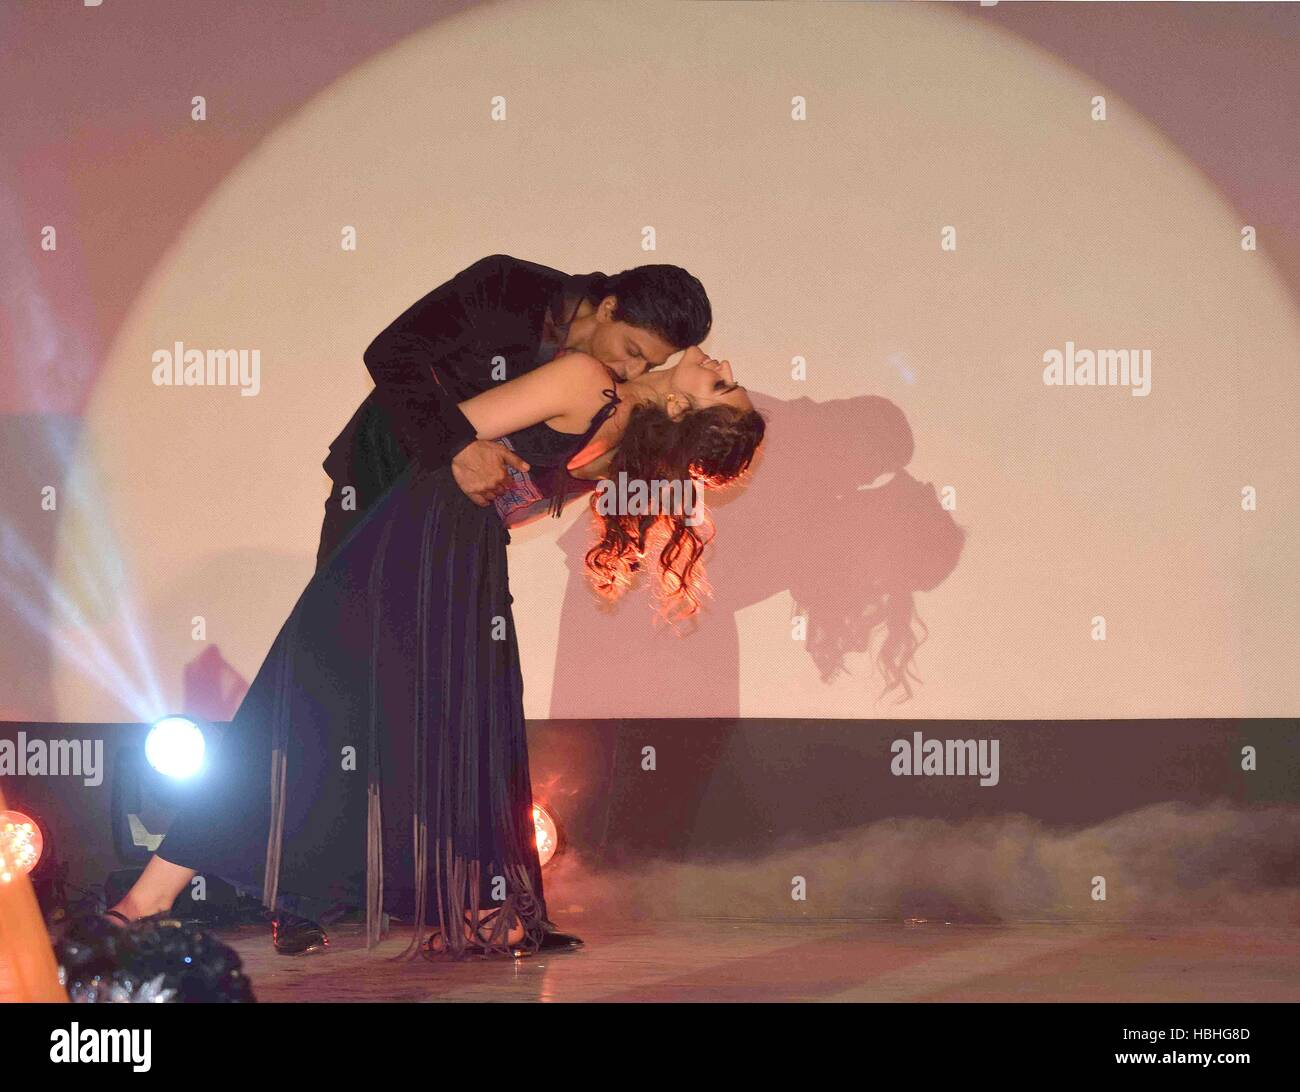 Shah Rukh Khan kissing her neck, Indian Bollywood actor and actress Stock  Photo - Alamy